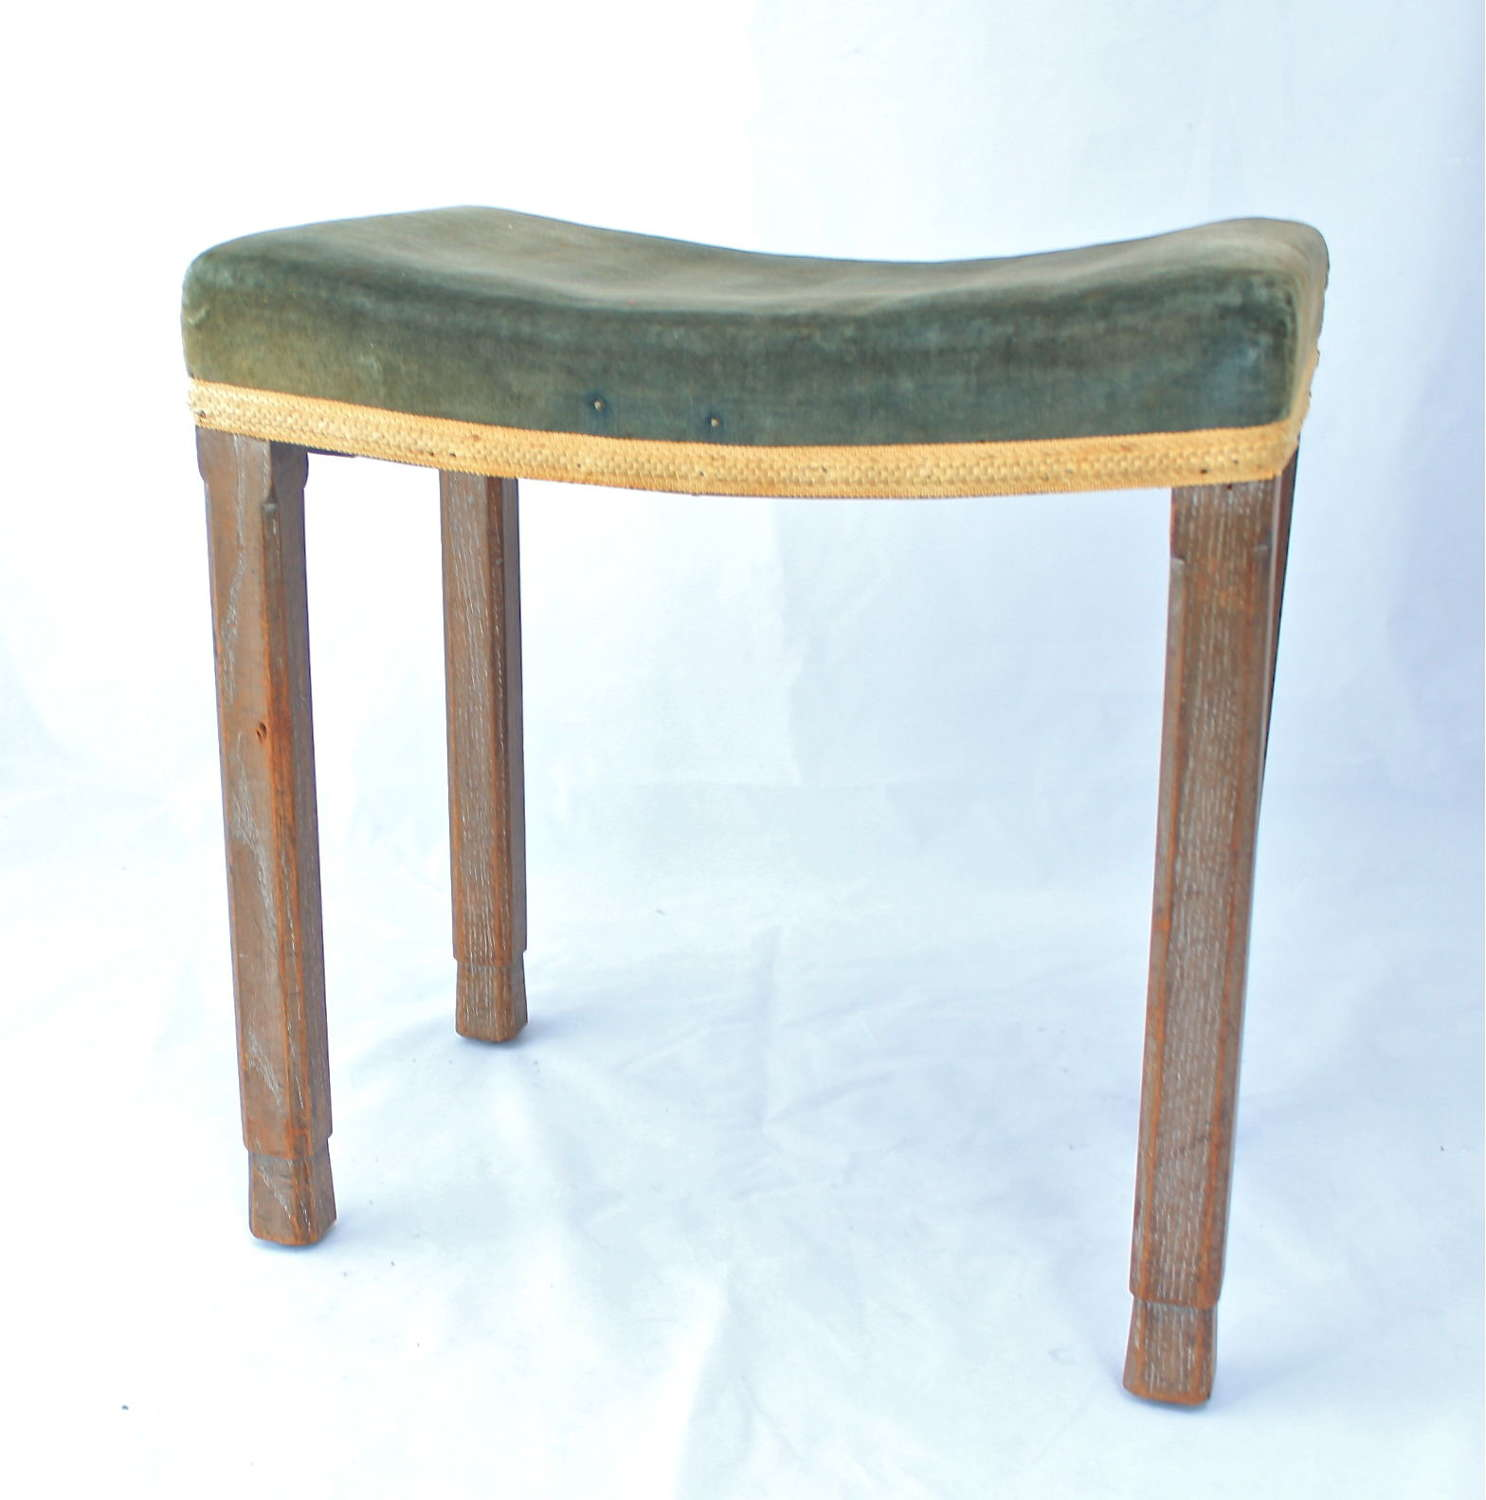 A George VI Coronation Stool